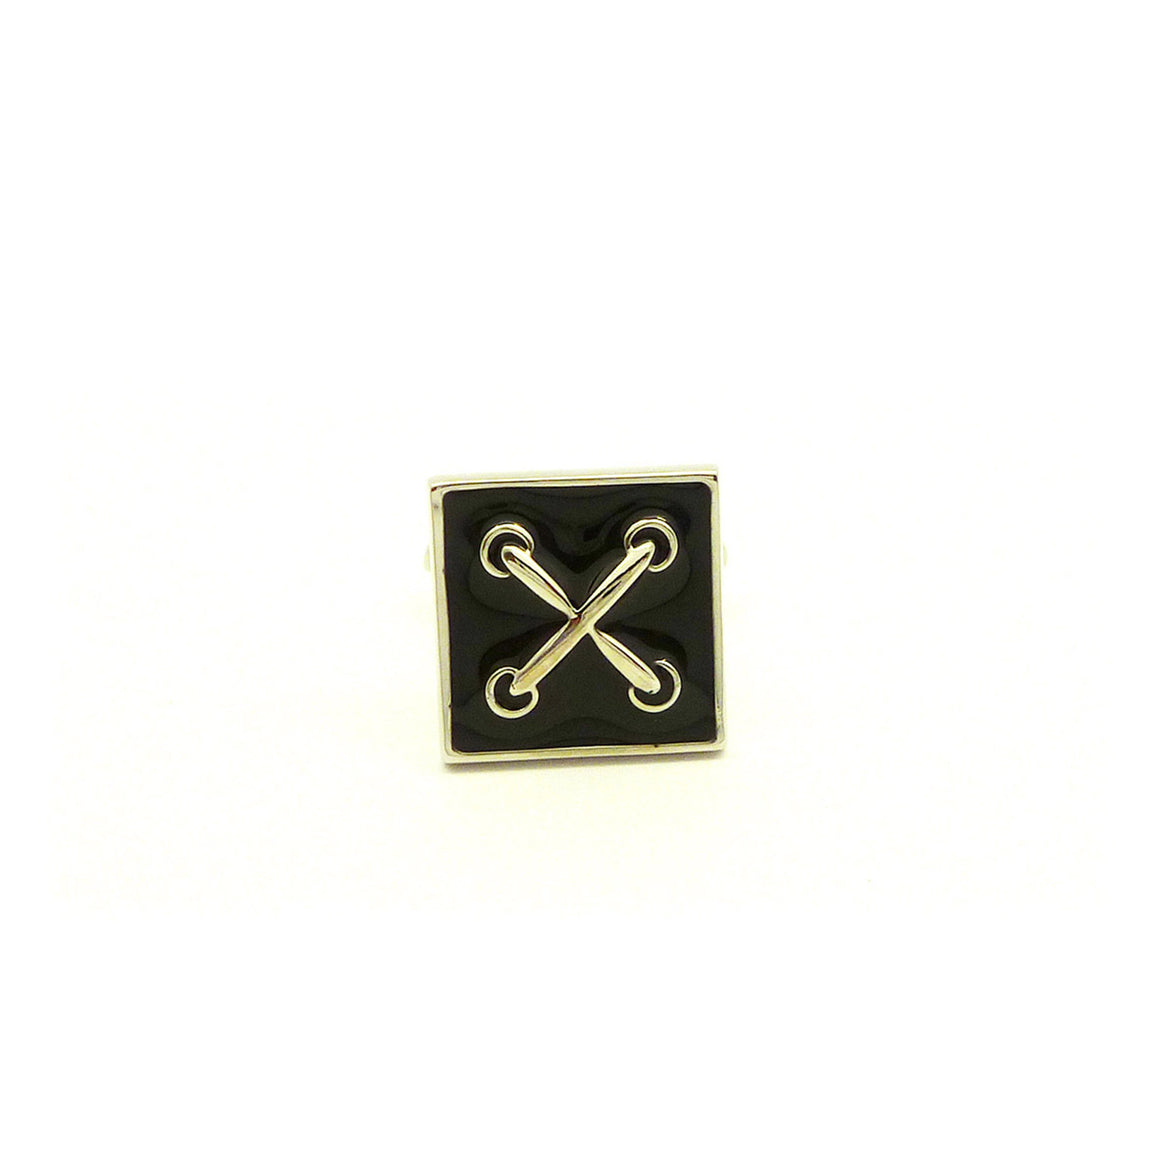 Wild Links - Silver Enamel Cross Cufflinks